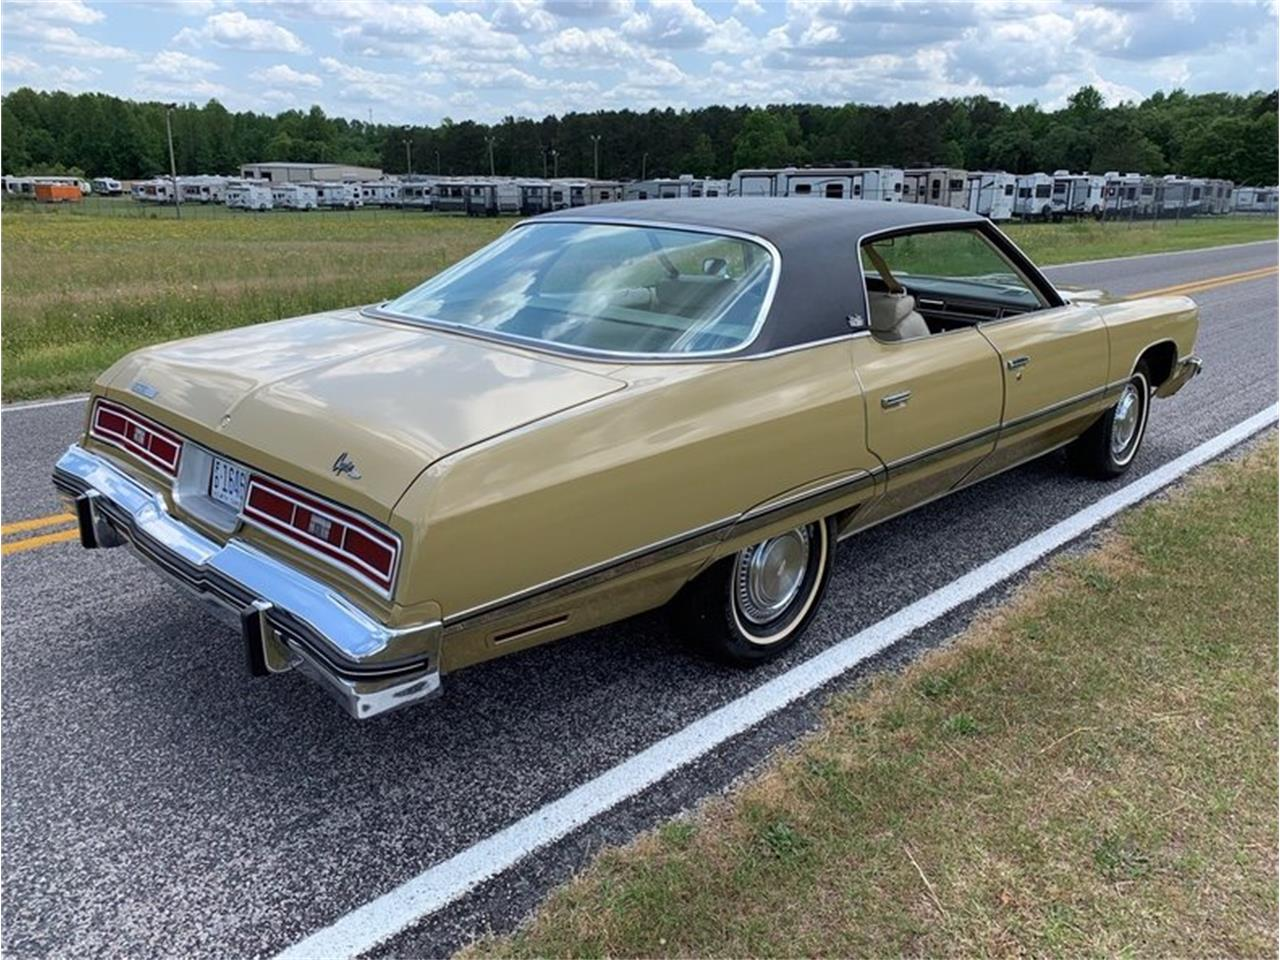 Large Picture of 1974 Caprice located in Greensboro North Carolina Auction Vehicle Offered by GAA Classic Cars Auctions - Q8X9